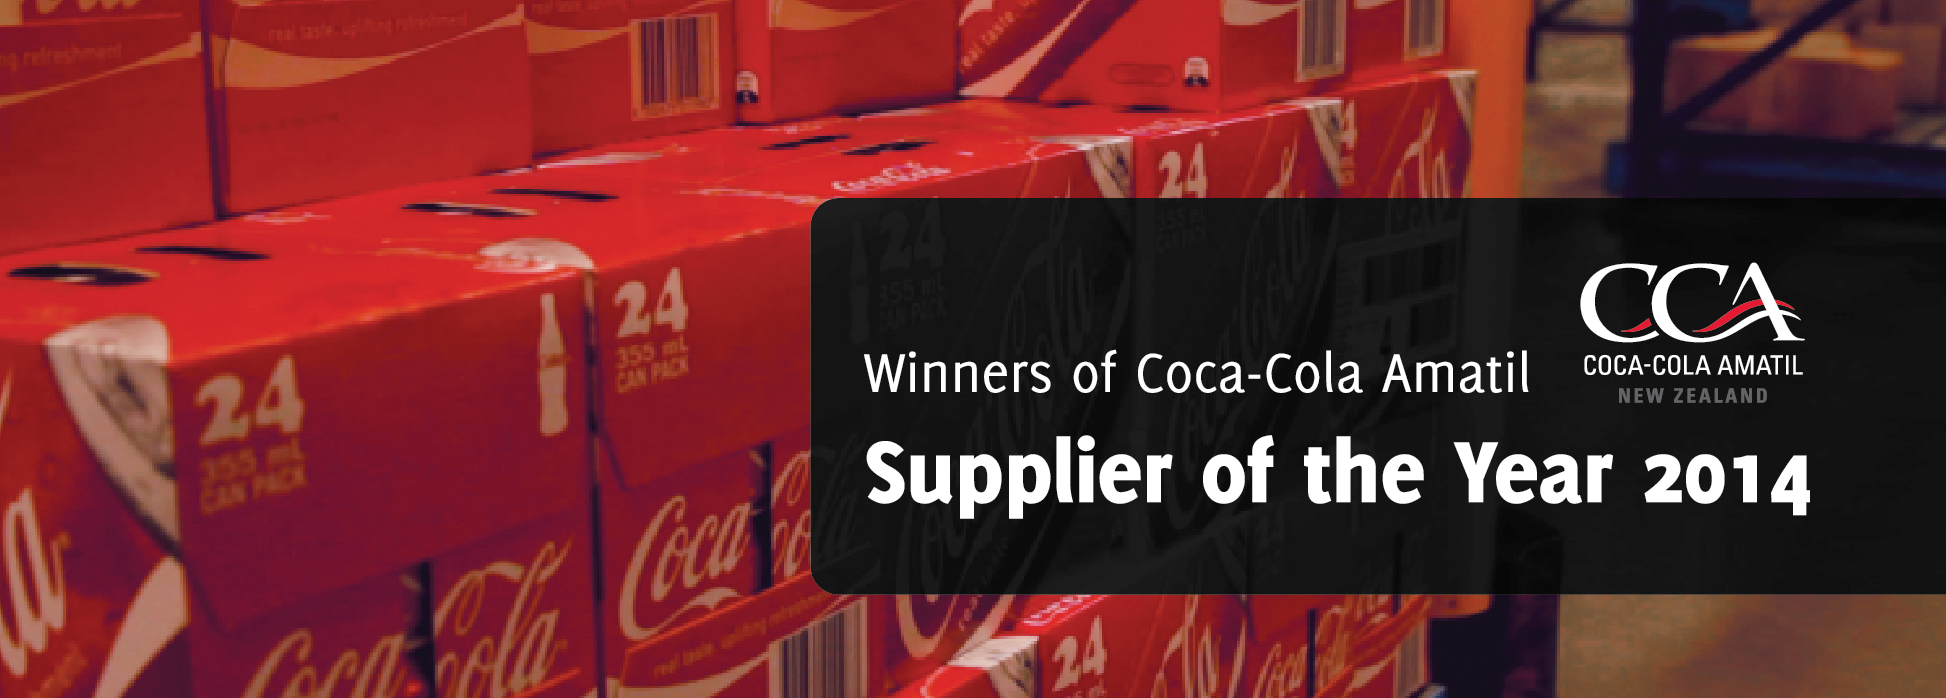 CCA Supplier of the Year 2014